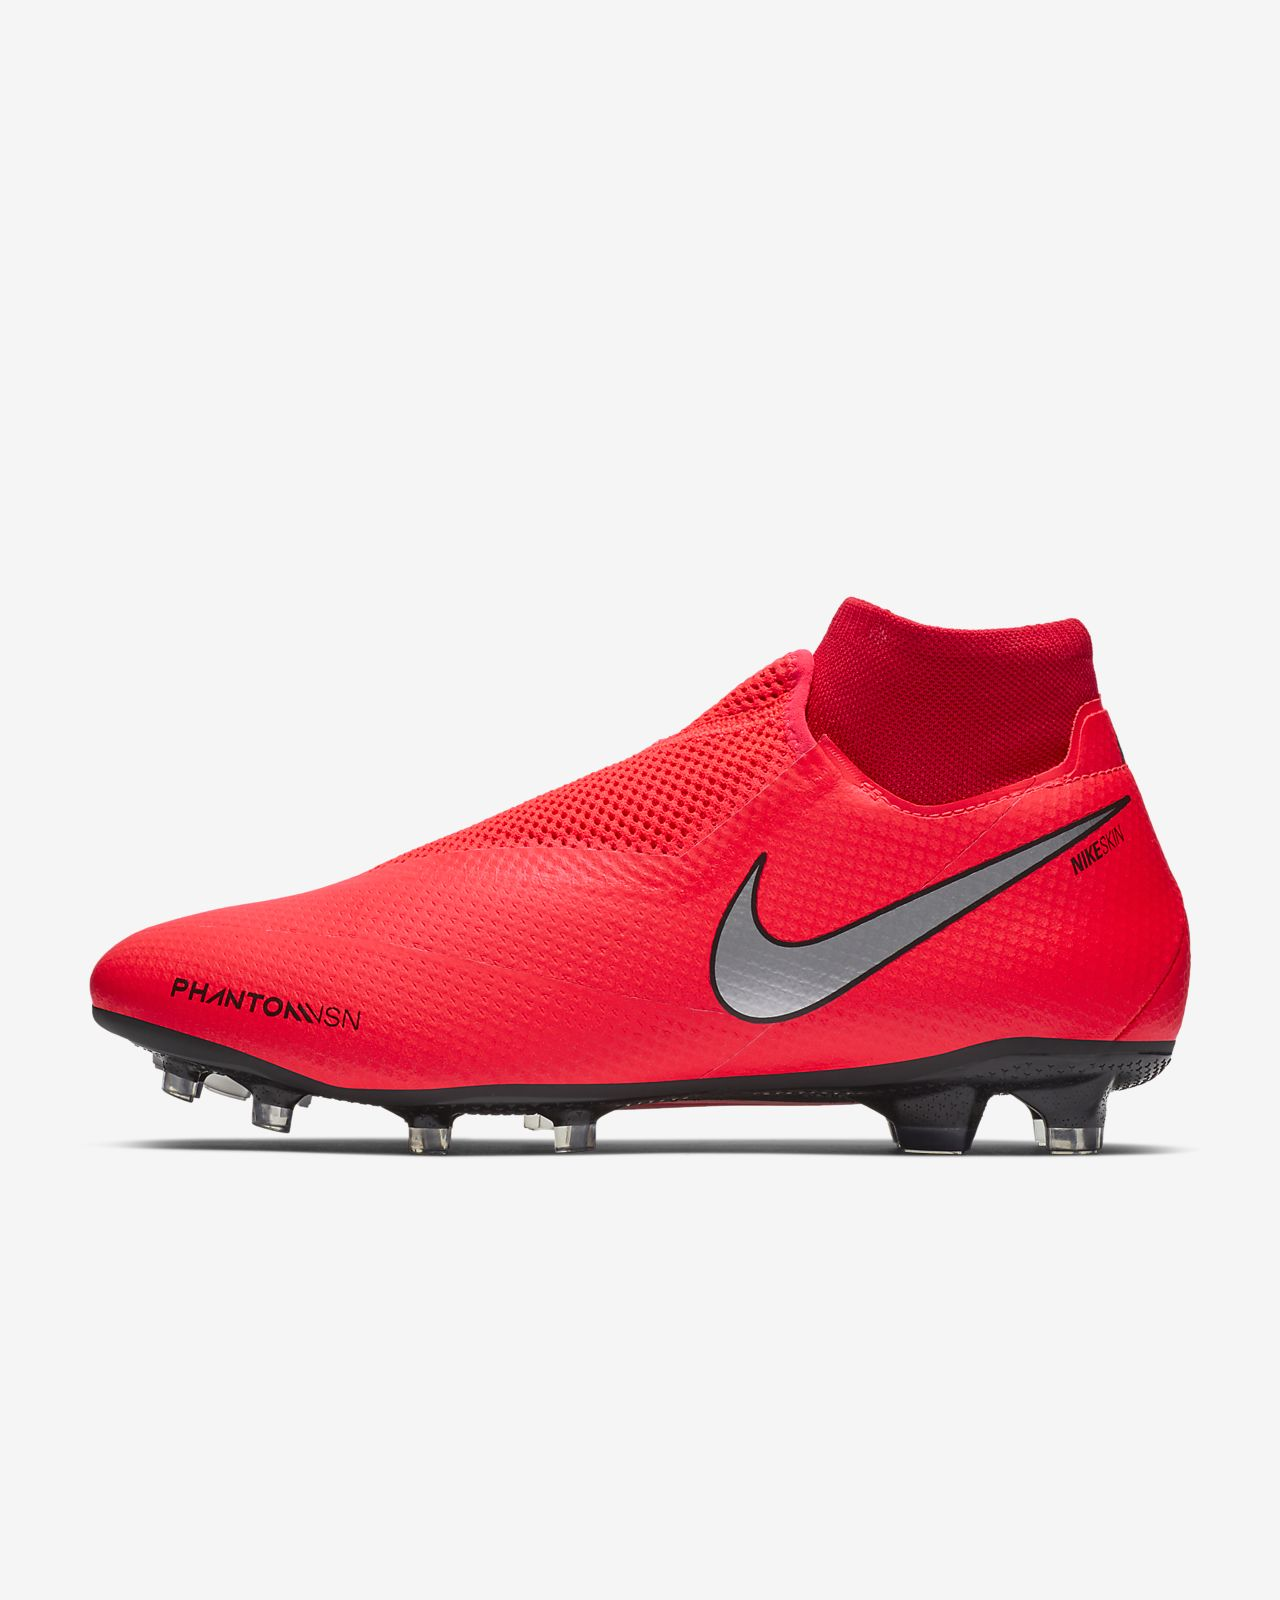 ... Nike PhantomVSN Pro Dynamic Fit Game Over FG Botas de fútbol para  terreno firme df3fc8bdcfa